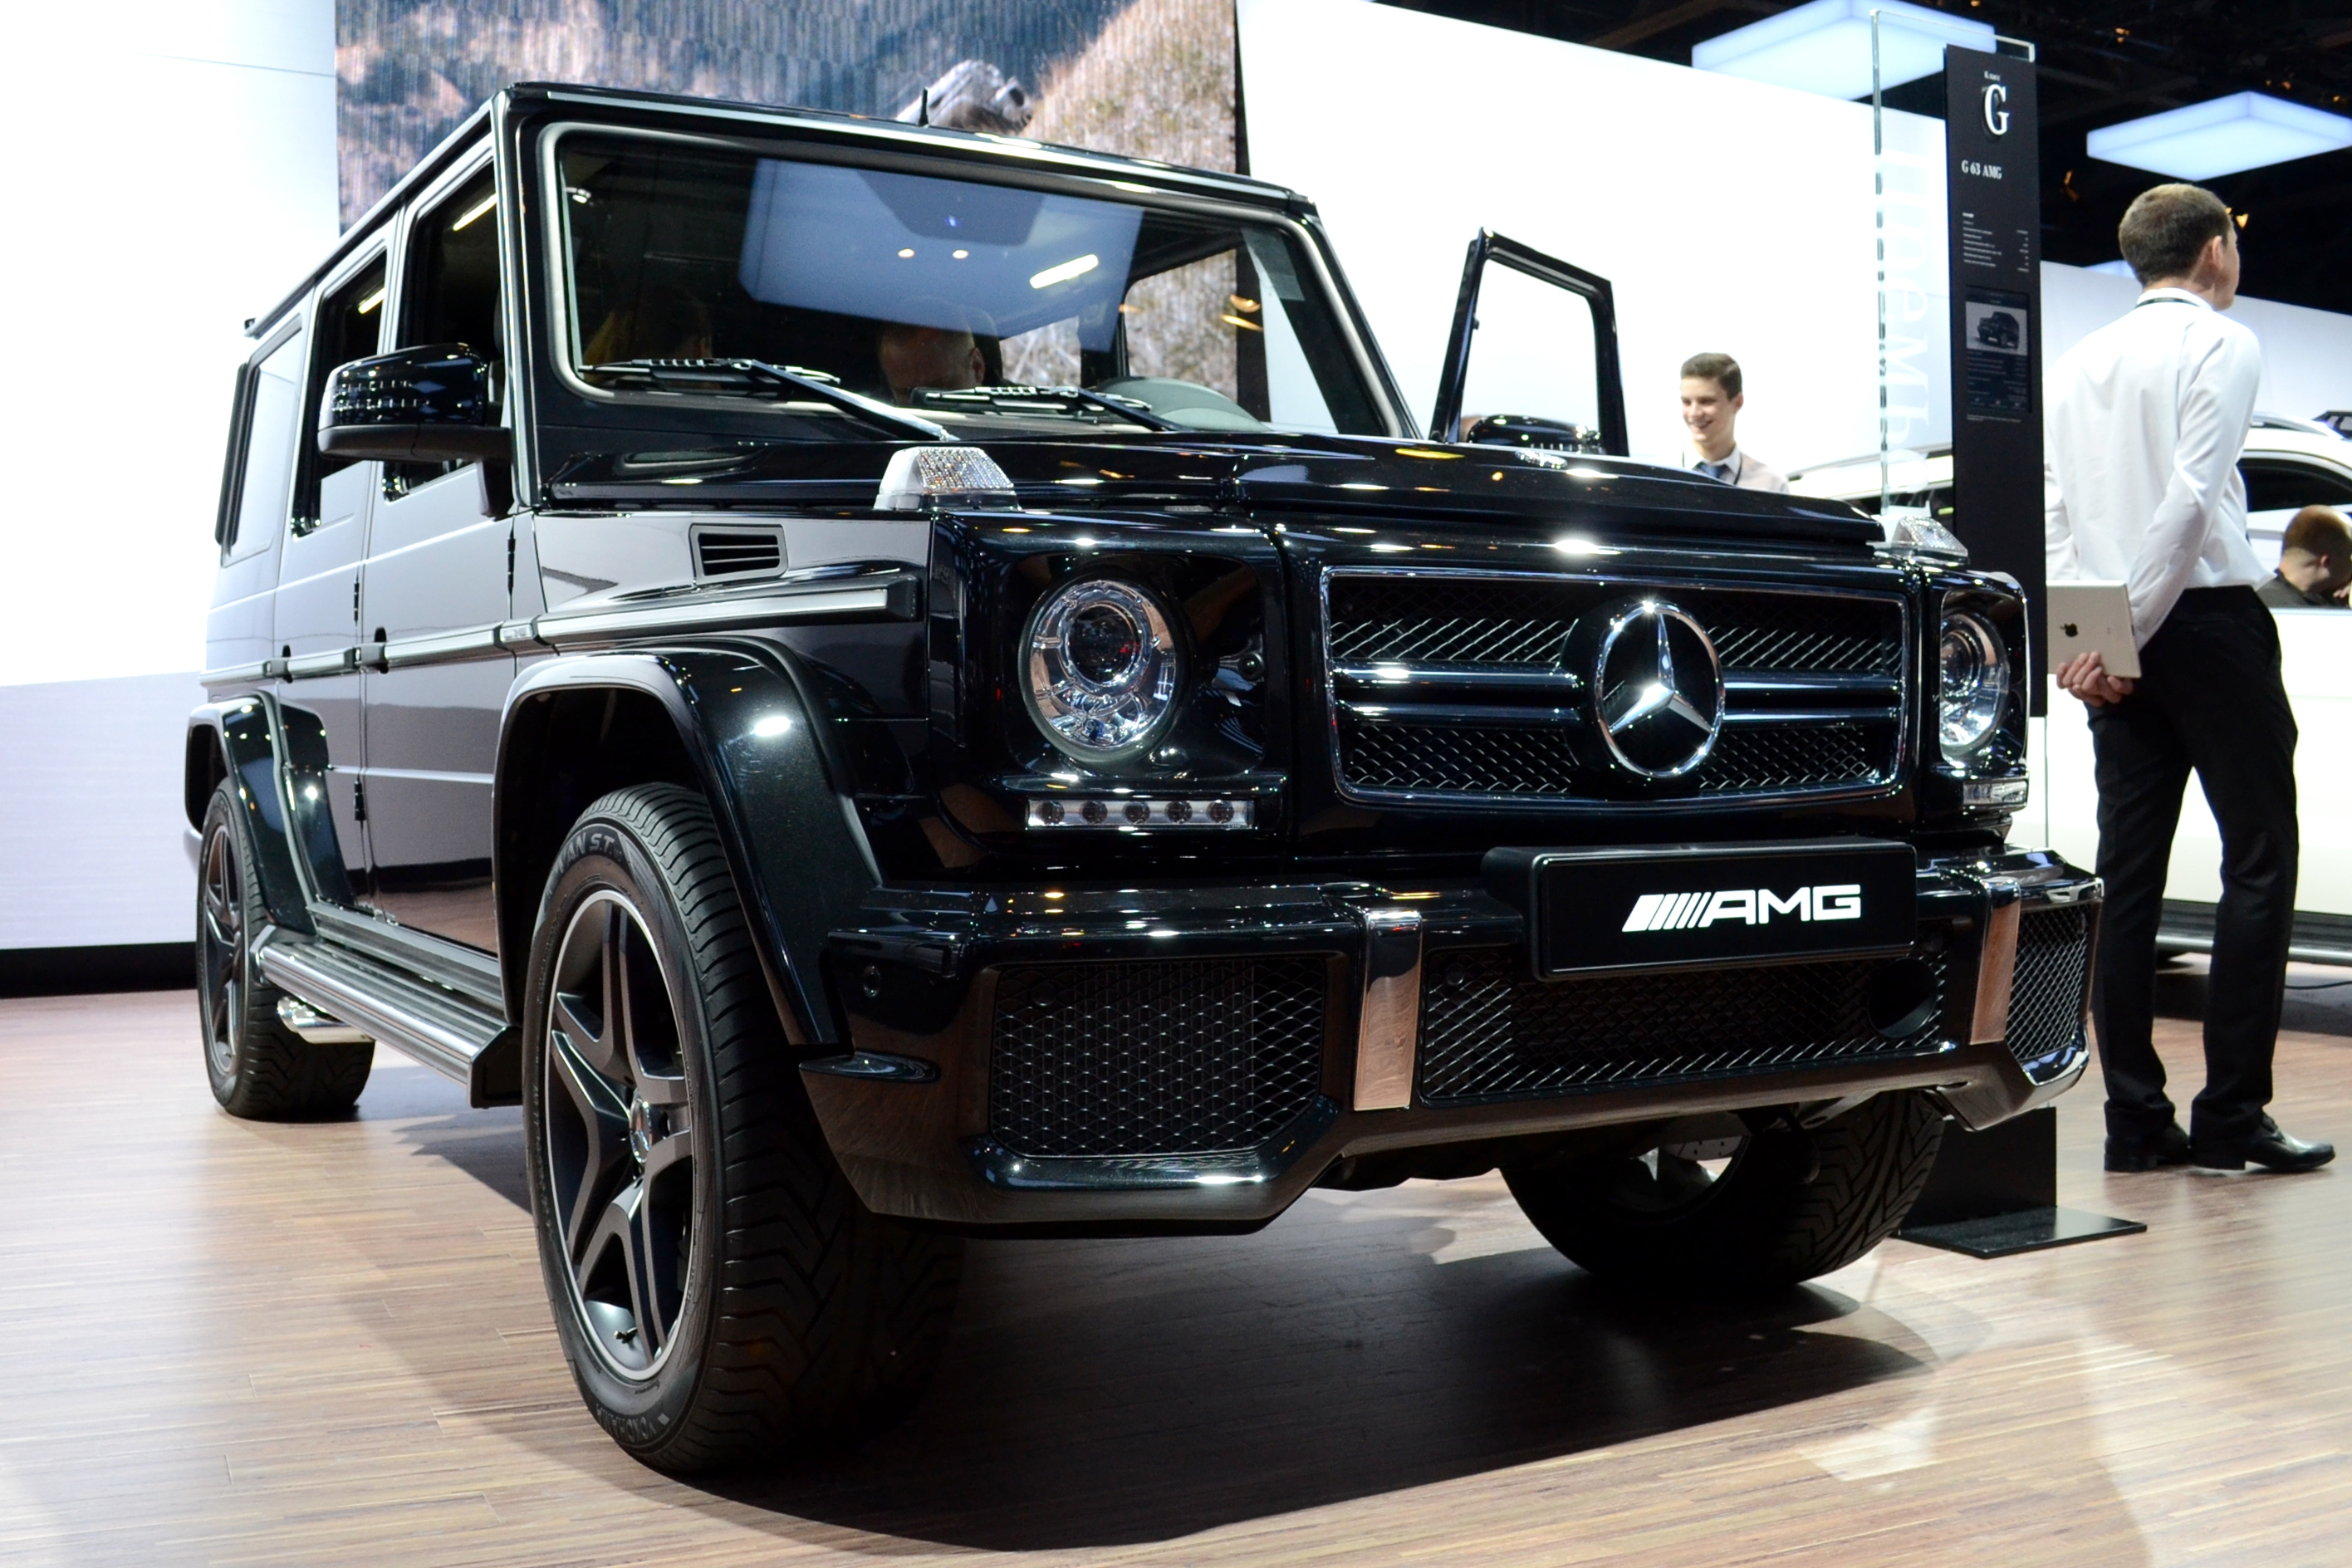 Mercedes Benz G 63 AMG technical details history photos on Better